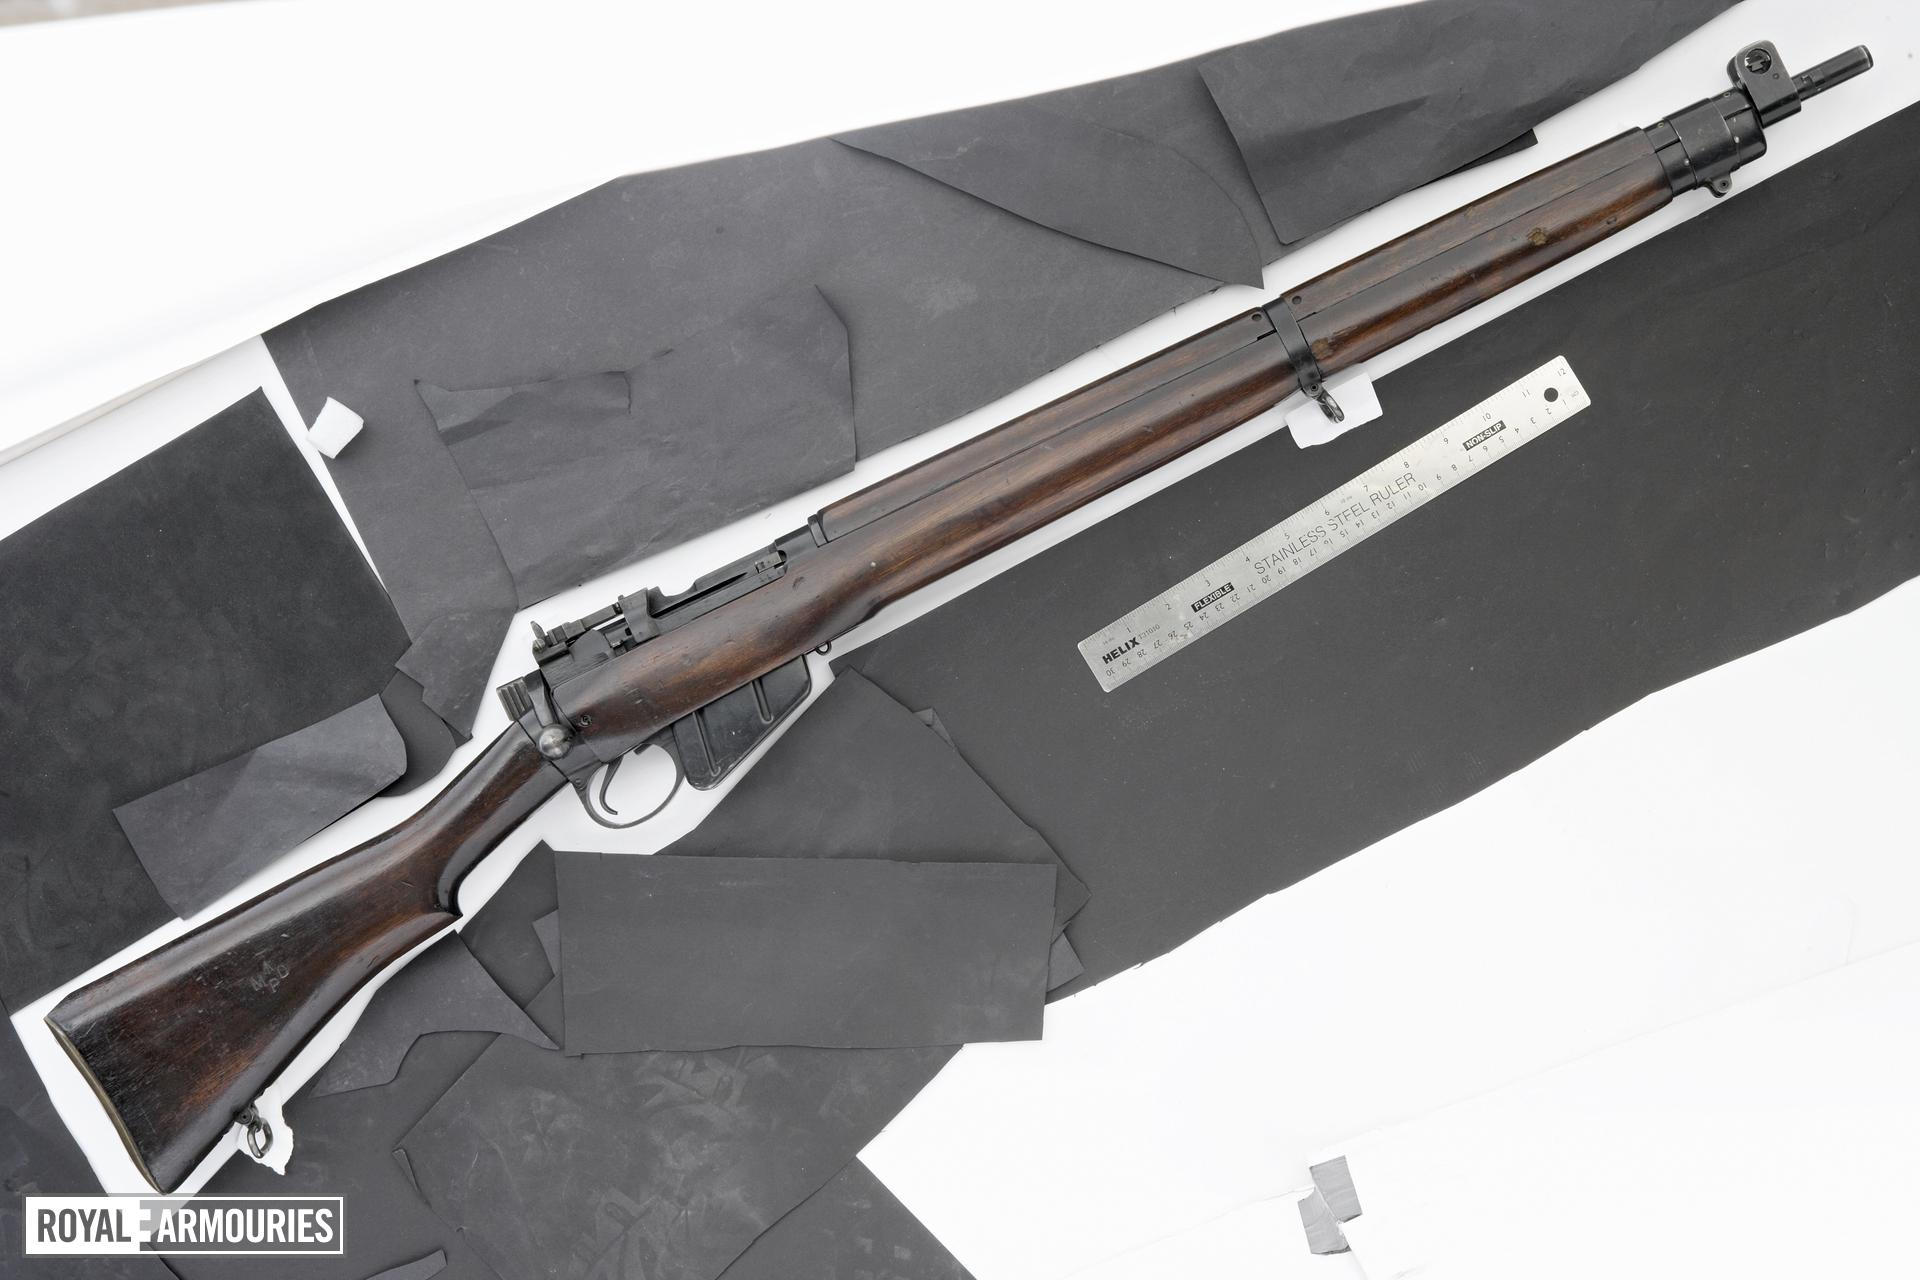 Centrefire bolt-action rifle - No.4 Mk.II